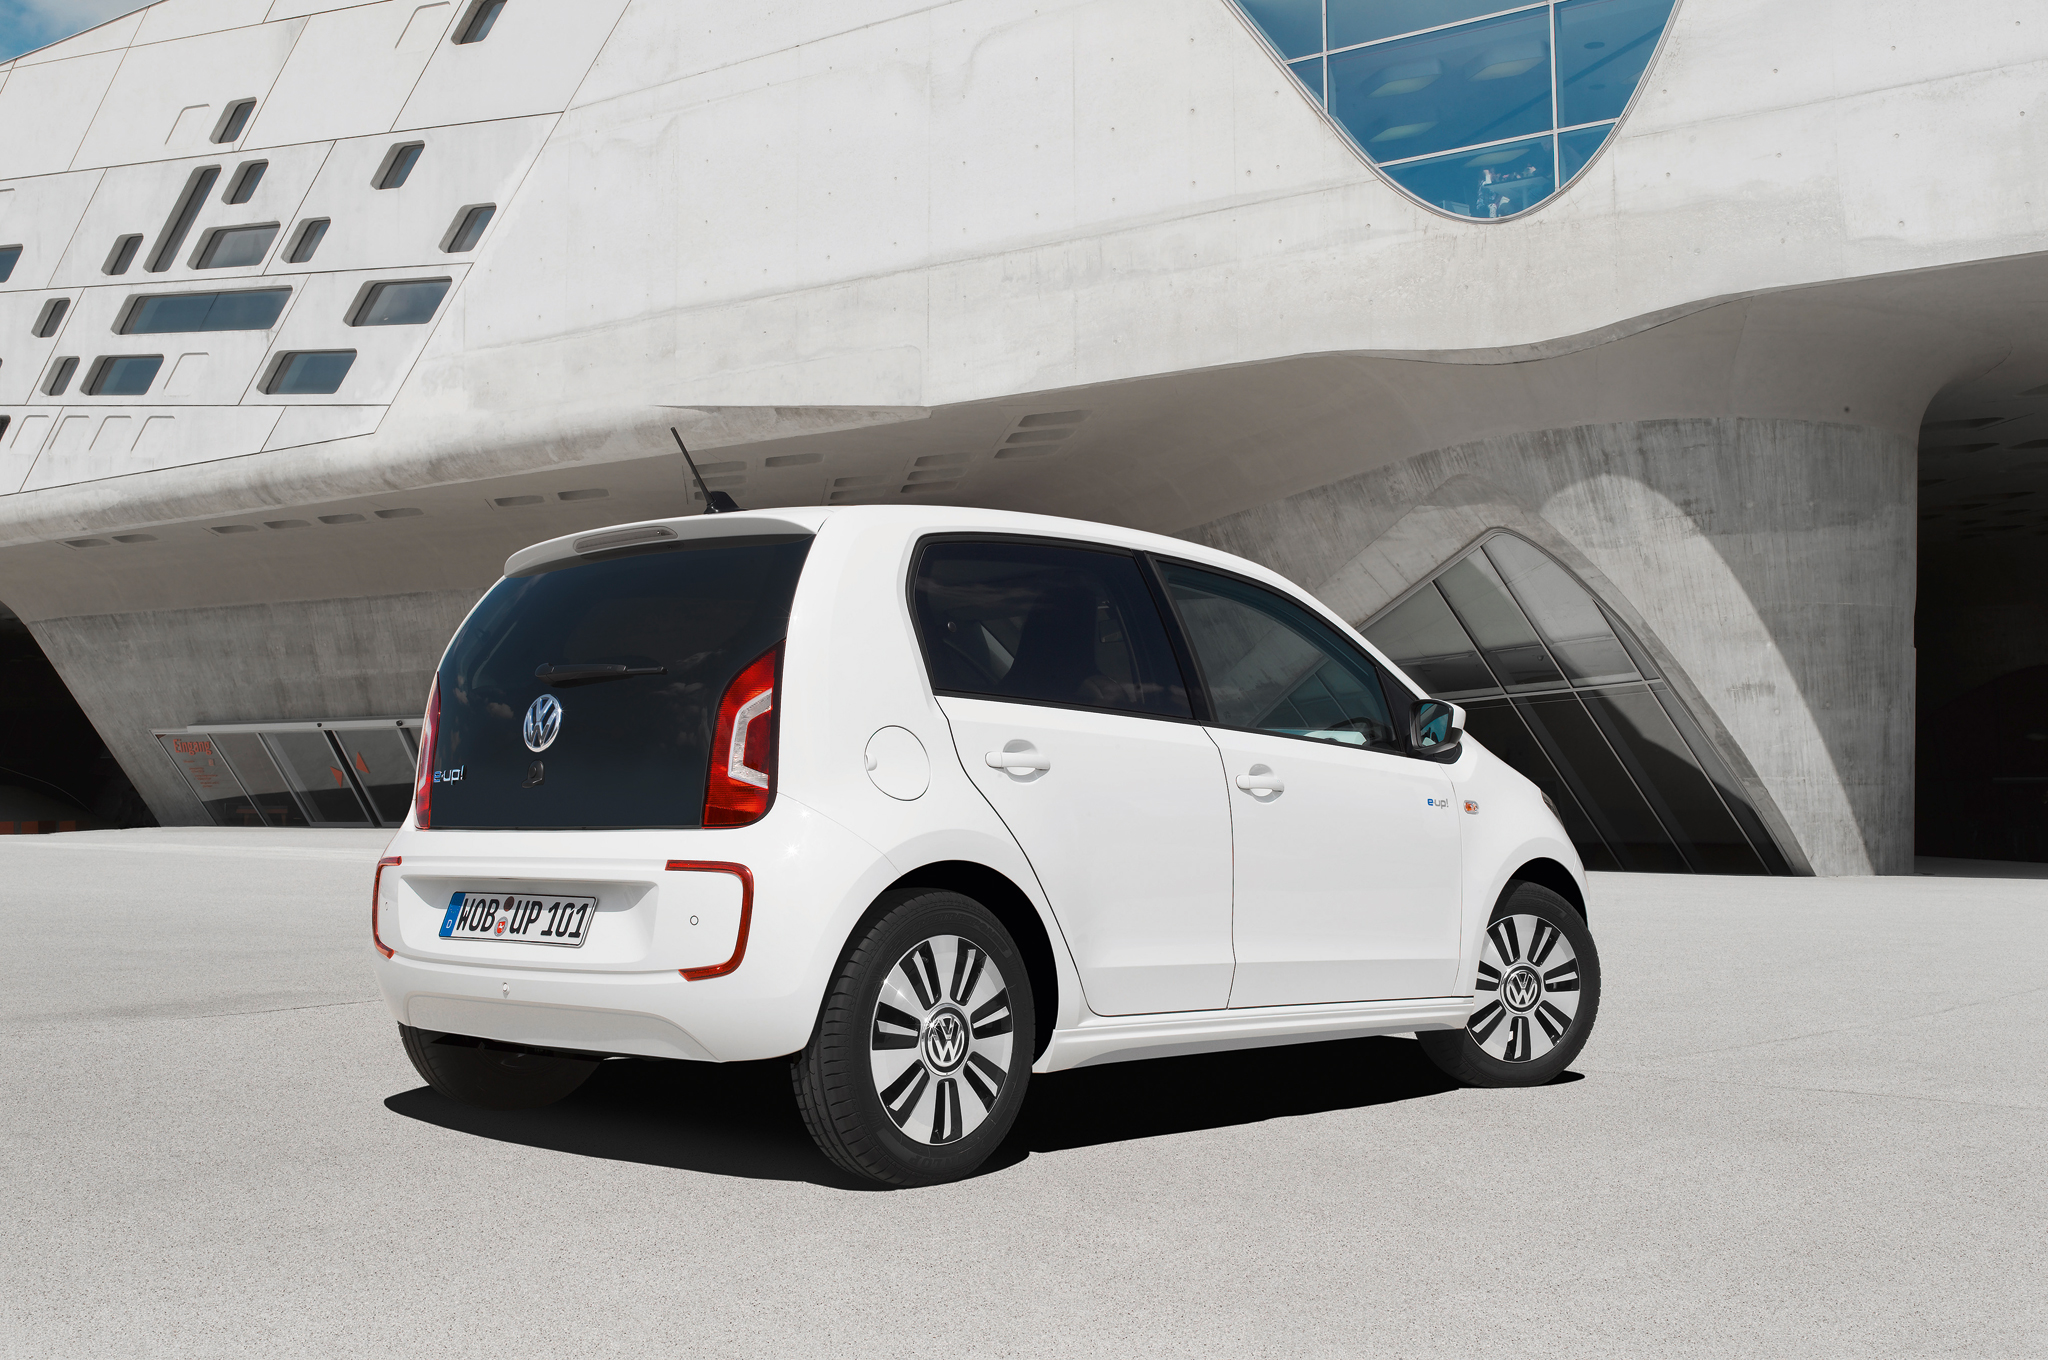 2014 Volkswagen E Up Rear Side Exterior (Photo 4 of 6)